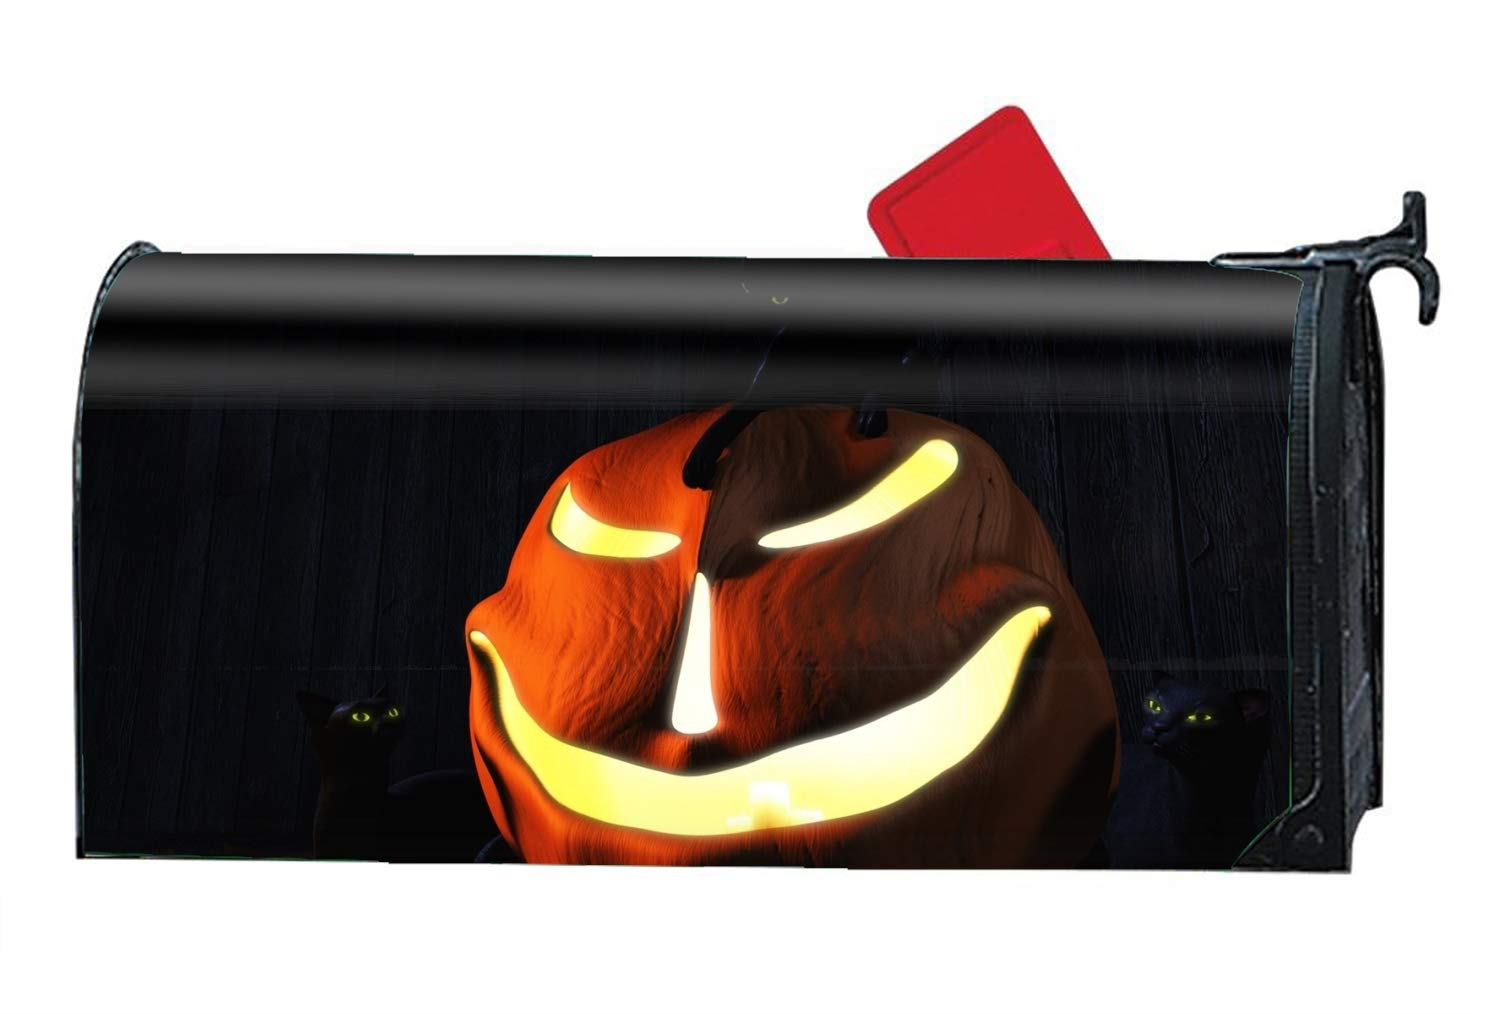 BYUII Mailbox Cover Outdoor Decoration, Halloween Cartoon Pumpkin Lamp, Rust-Proof Magnetic Mail Box Covers